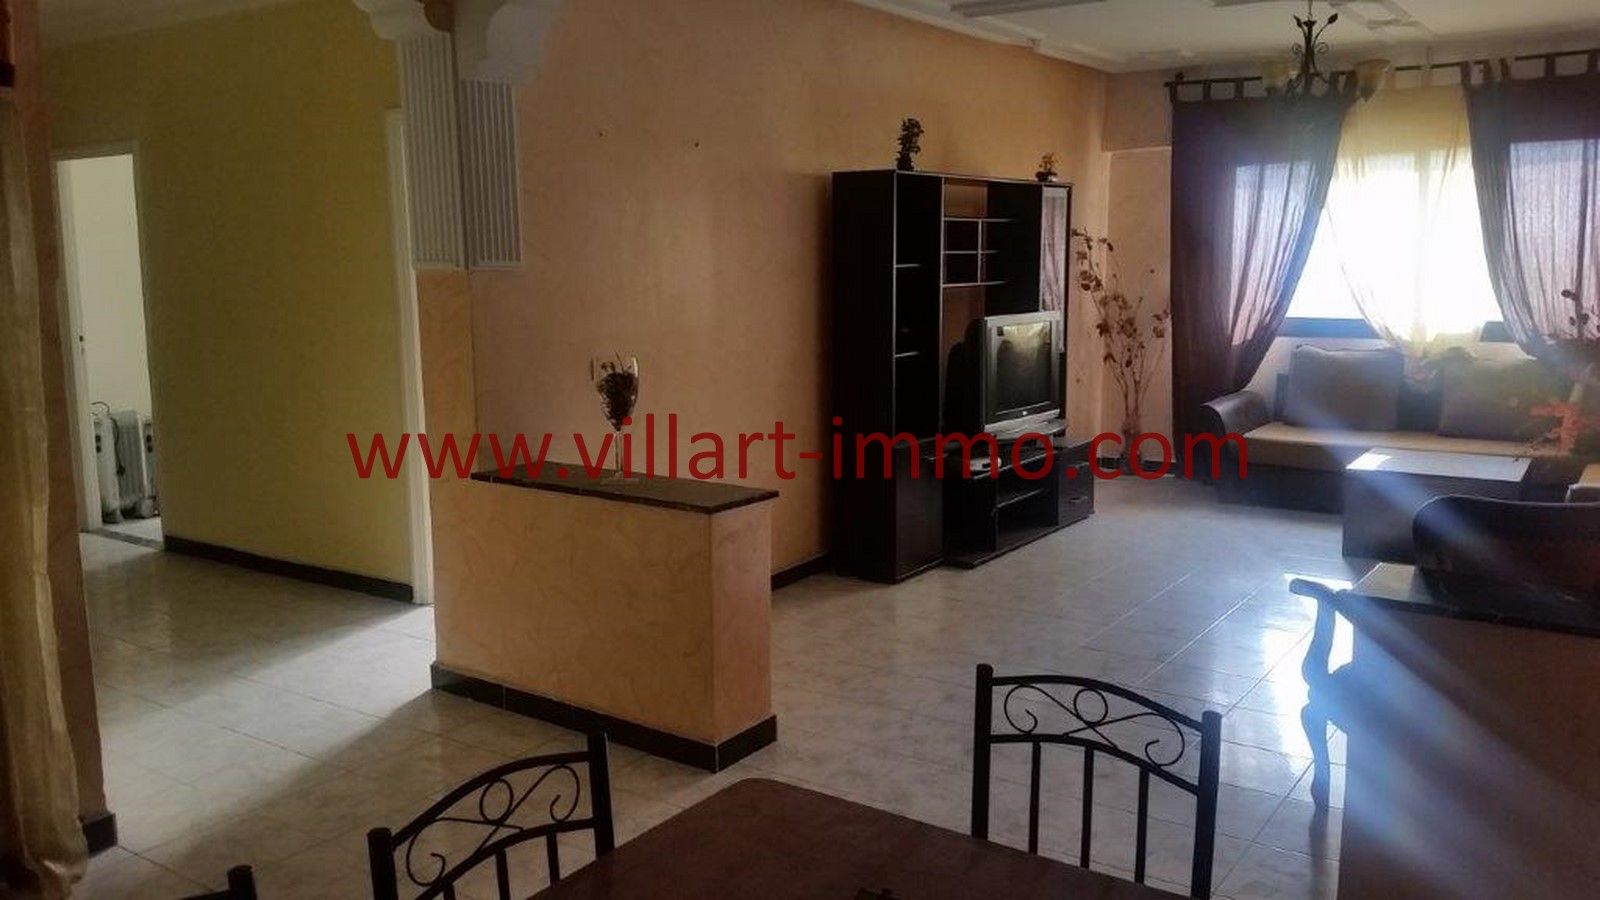 2-location-tanger-appartement-non-meublee-iberia-salon-2-l1013-villart-immo-agence-immobiliere